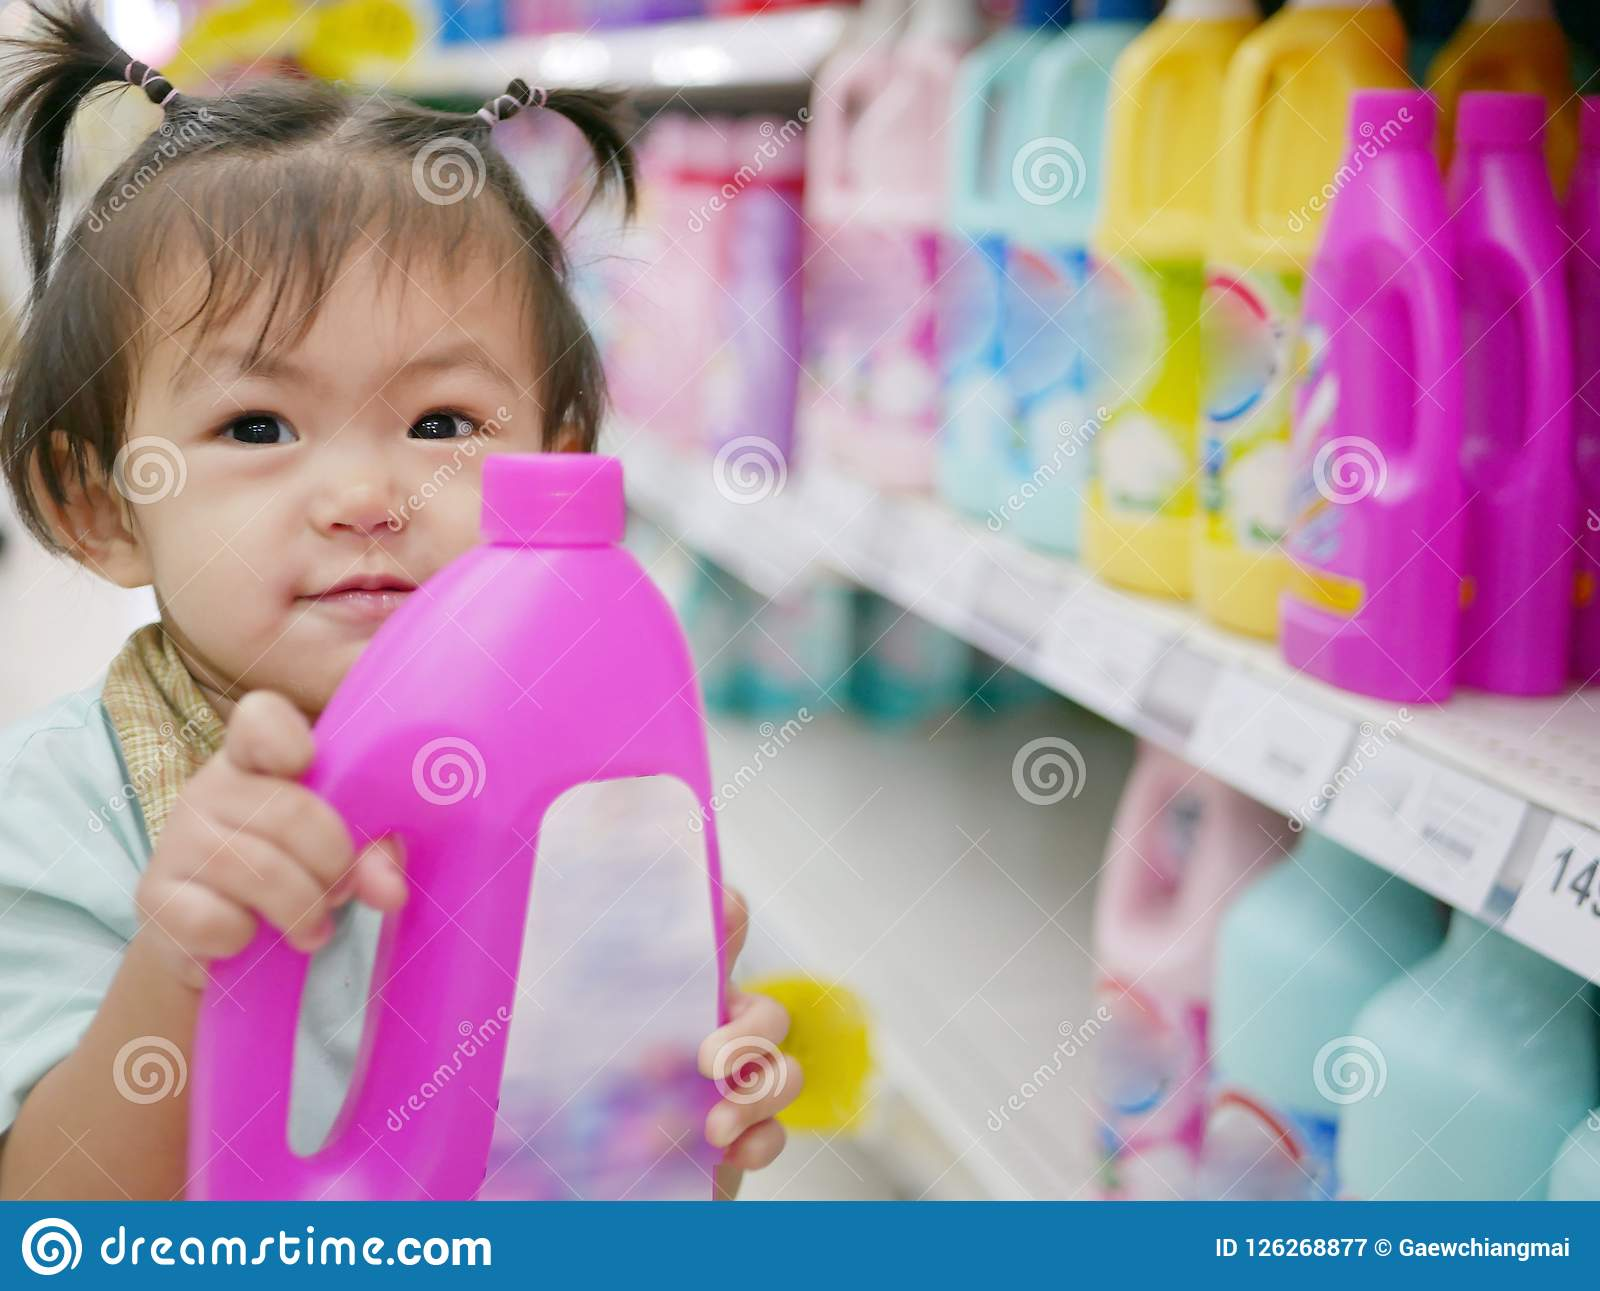 Little Asian baby girl holding a bottle of softener taken from the shelves